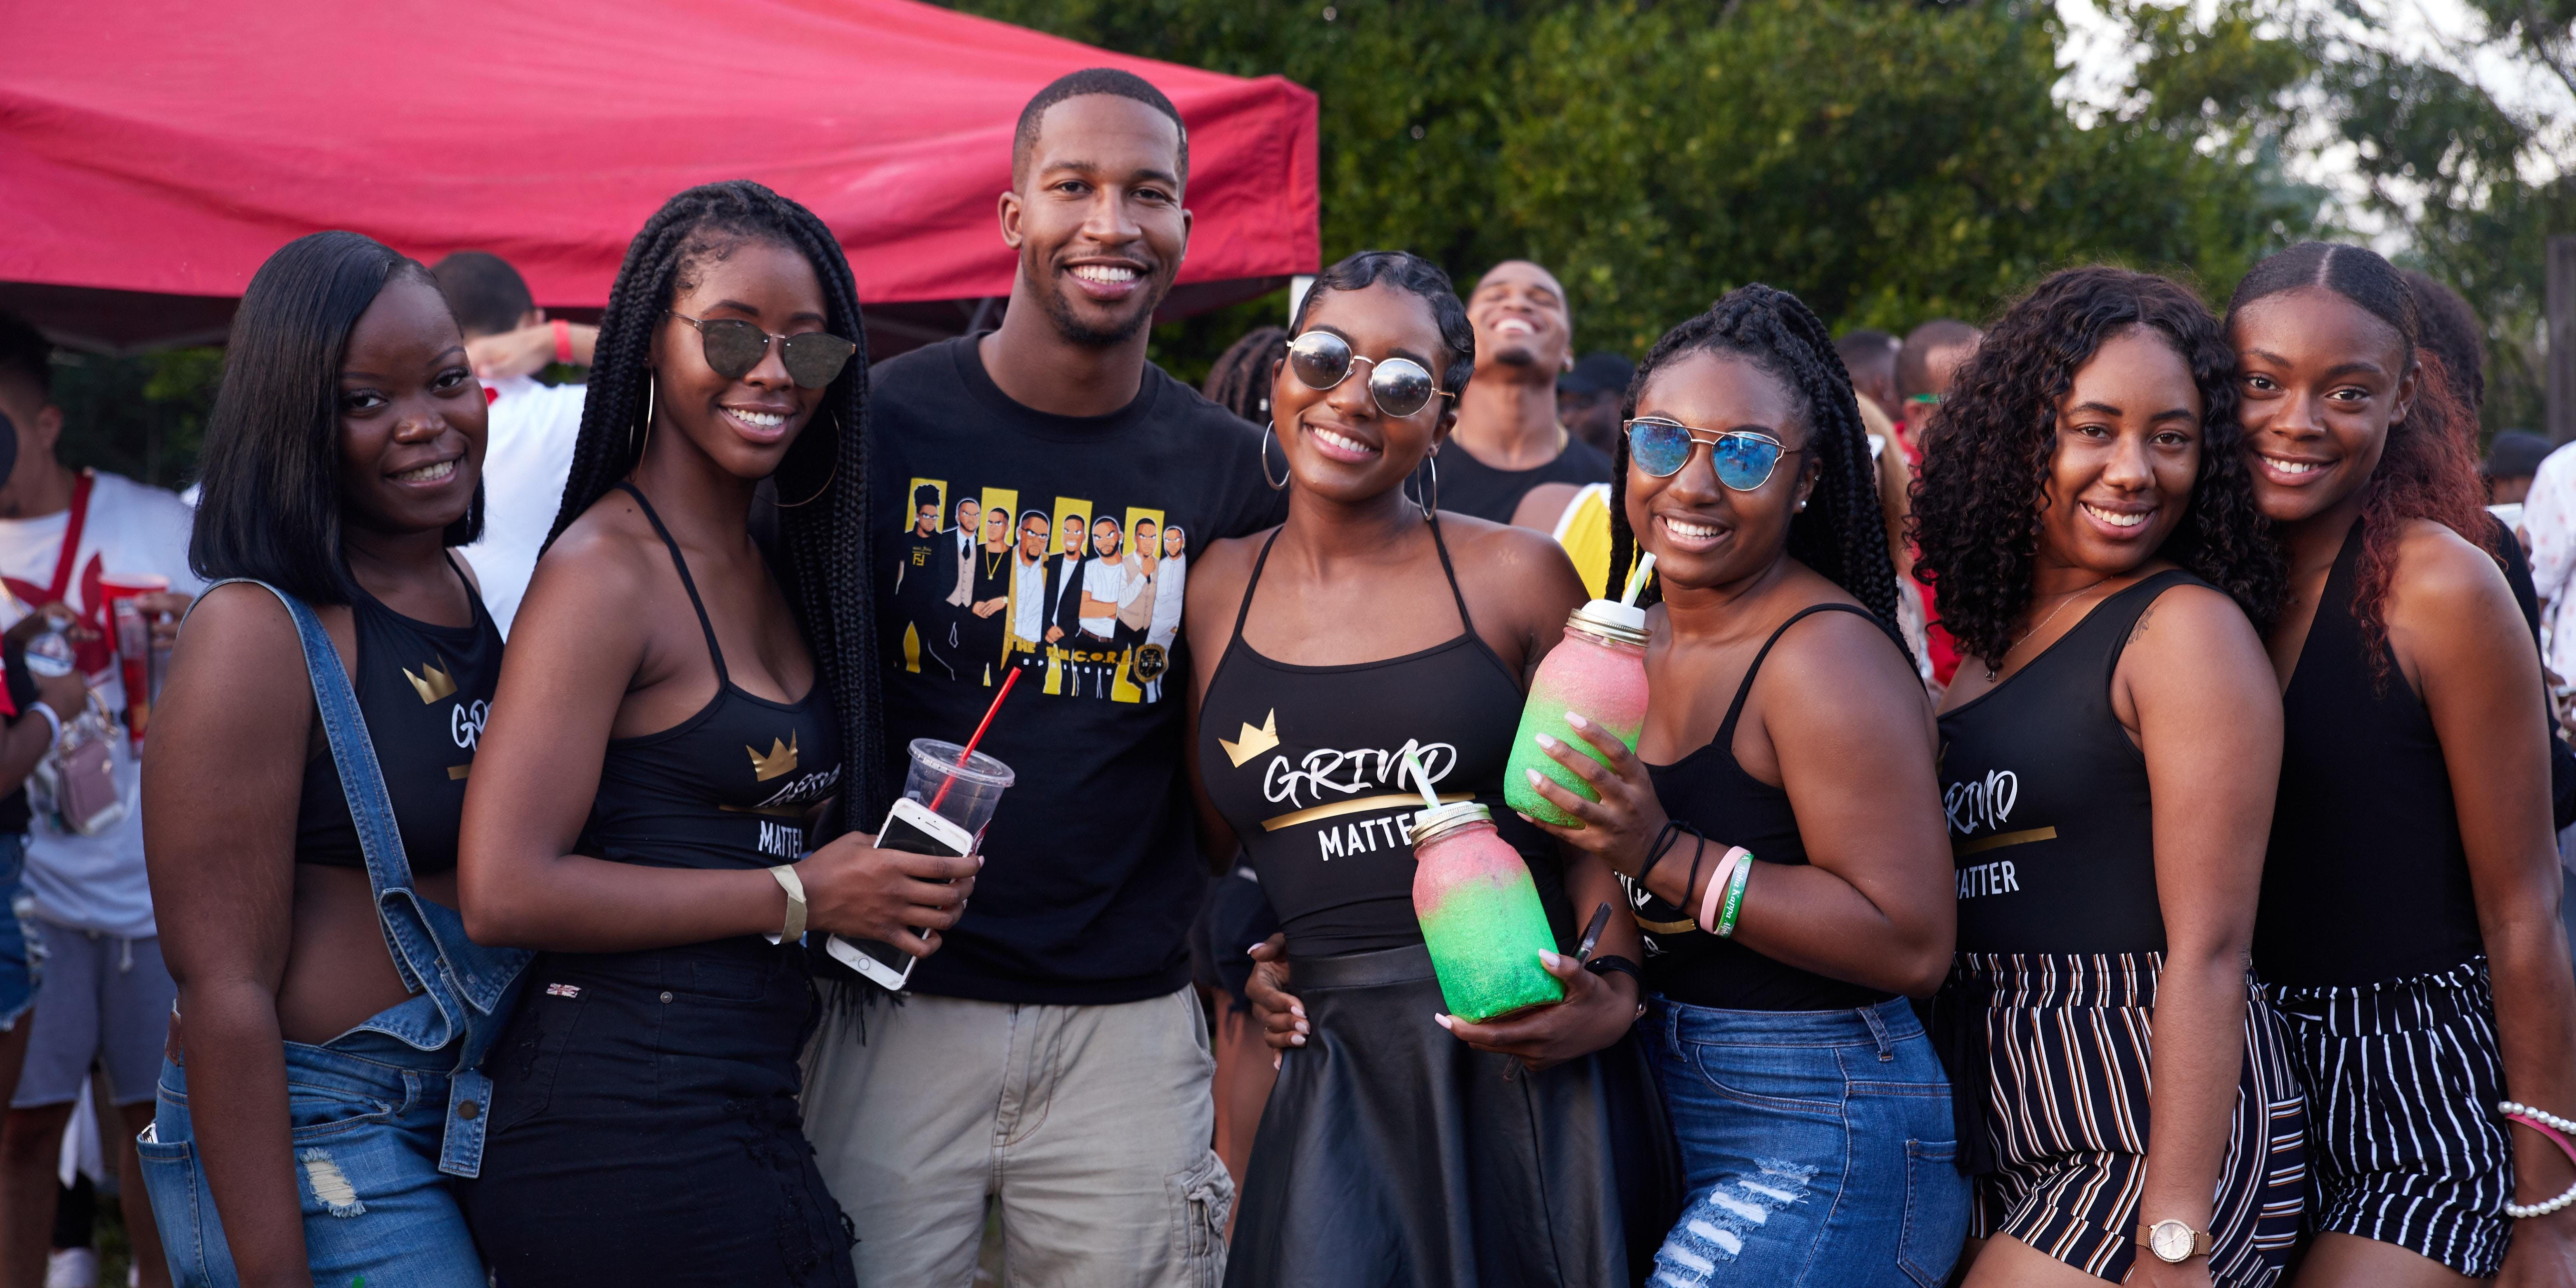 [CANCELLED RELOCATED TO CAMPUS] THE ALTERNATIVE TAILGATE